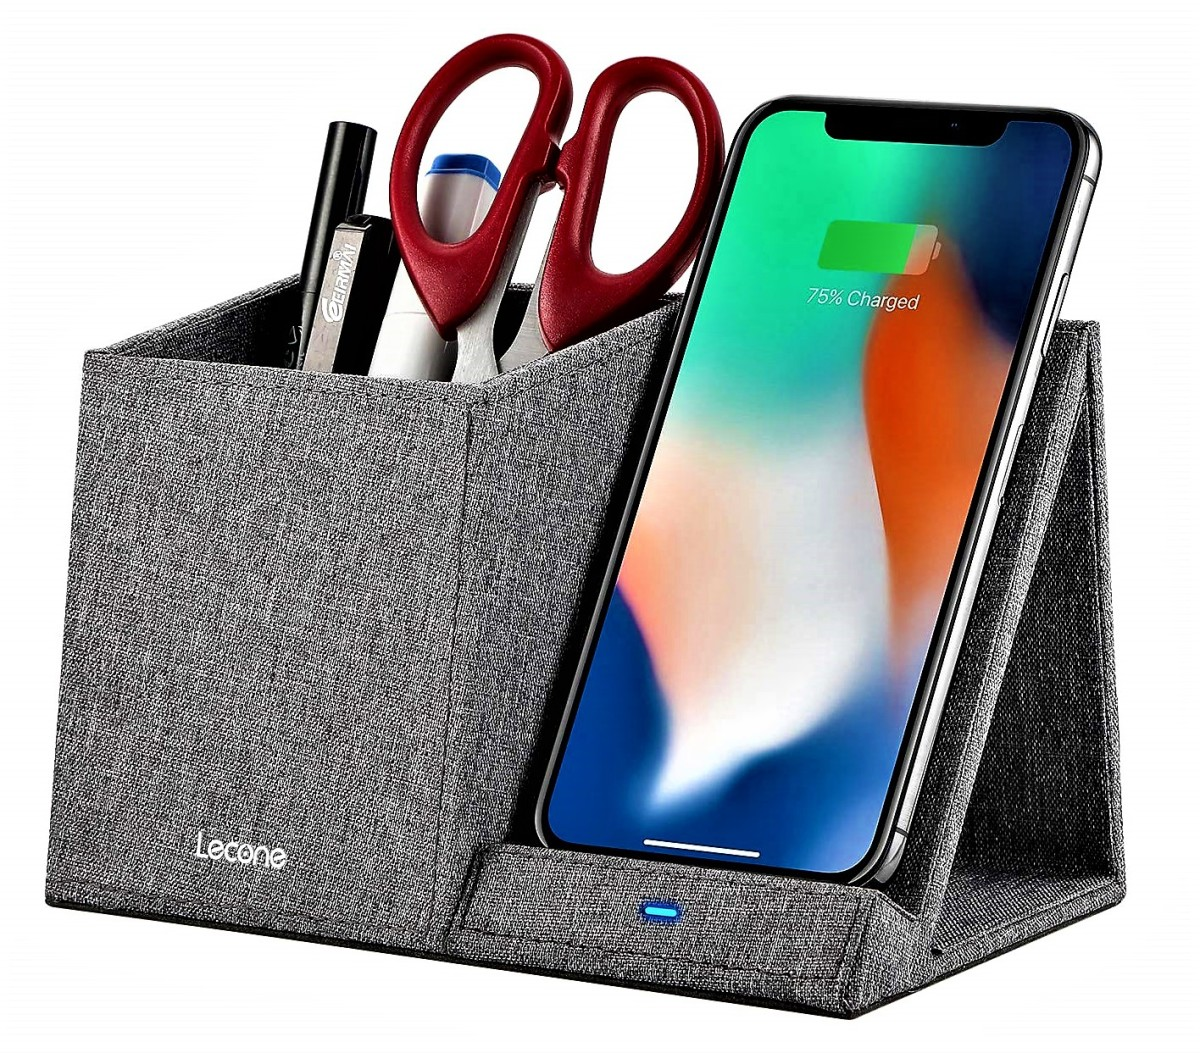 Lecone Wireless Charger With Desk Organizer